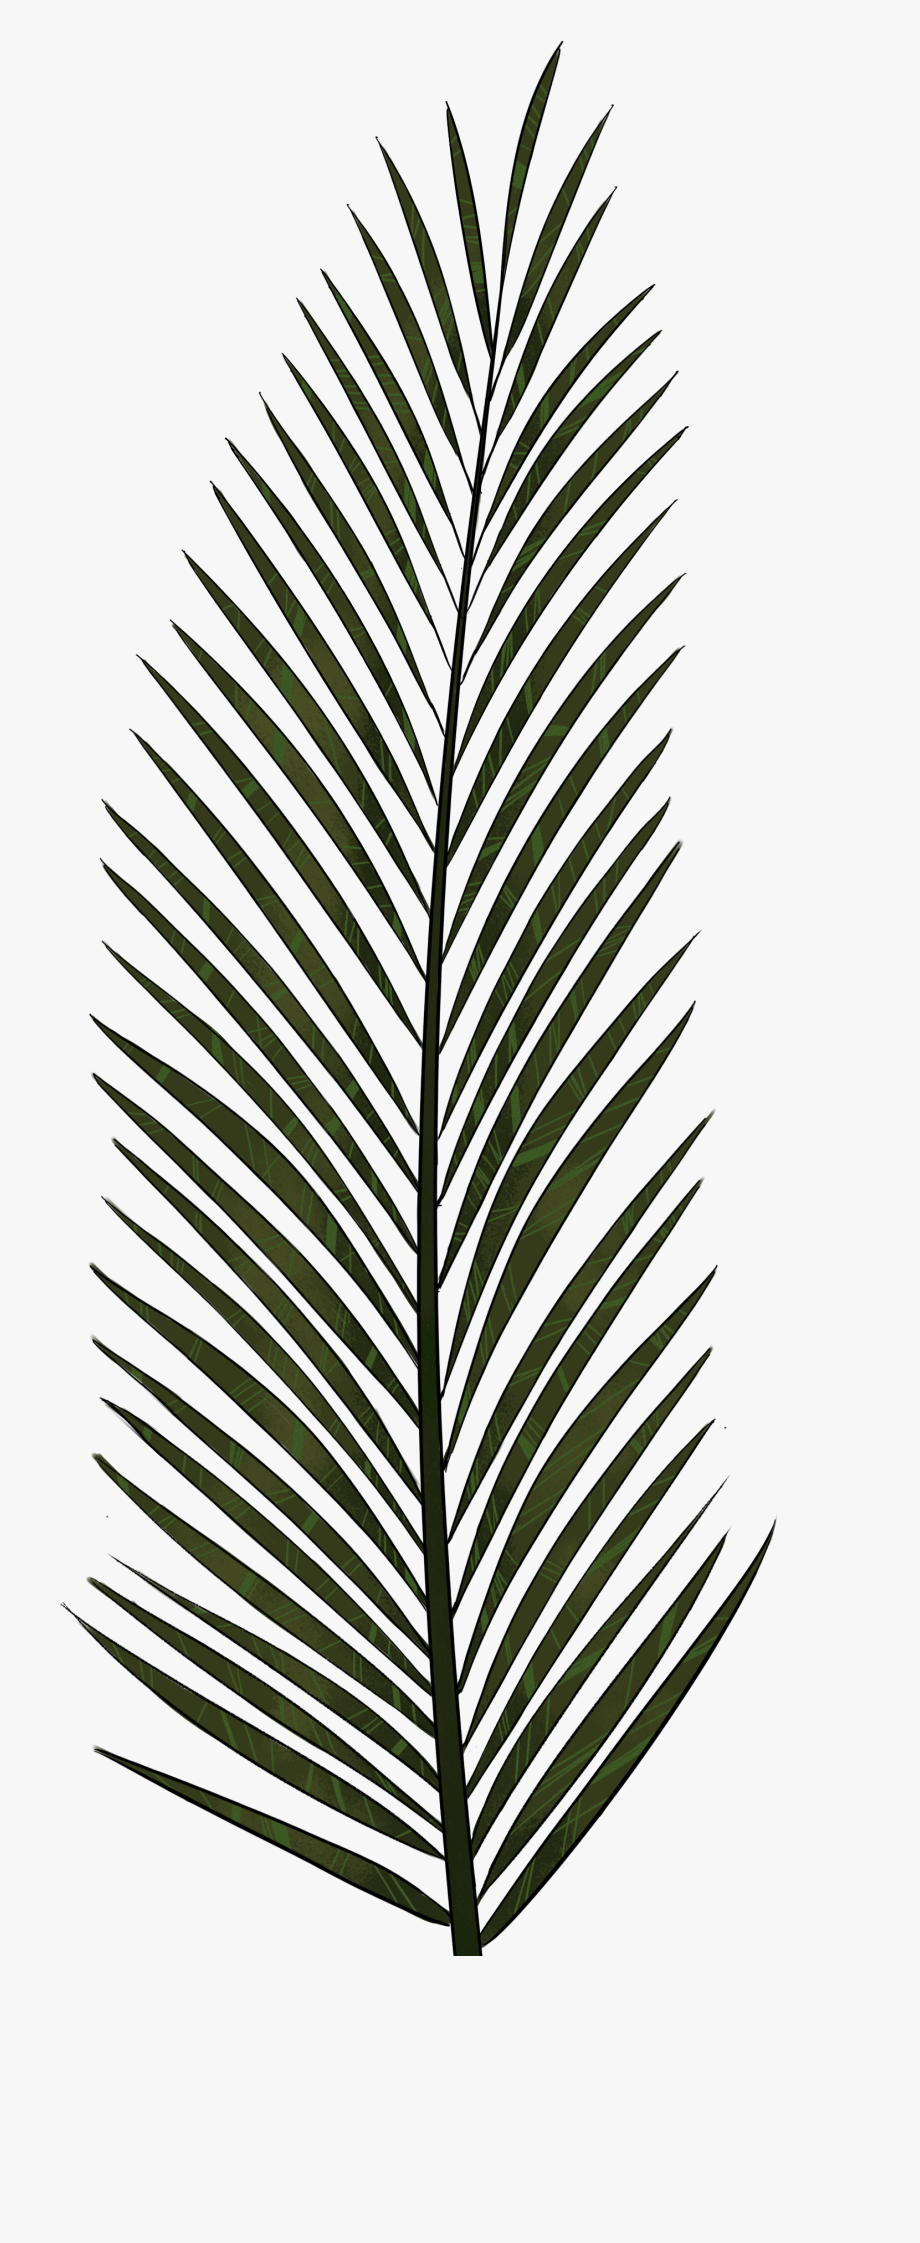 Palm leaves with pineapple clipart black and white picture black and white download Palm Leaf Png Textures And Style Radin Mas - Palm Tree Leaf ... picture black and white download